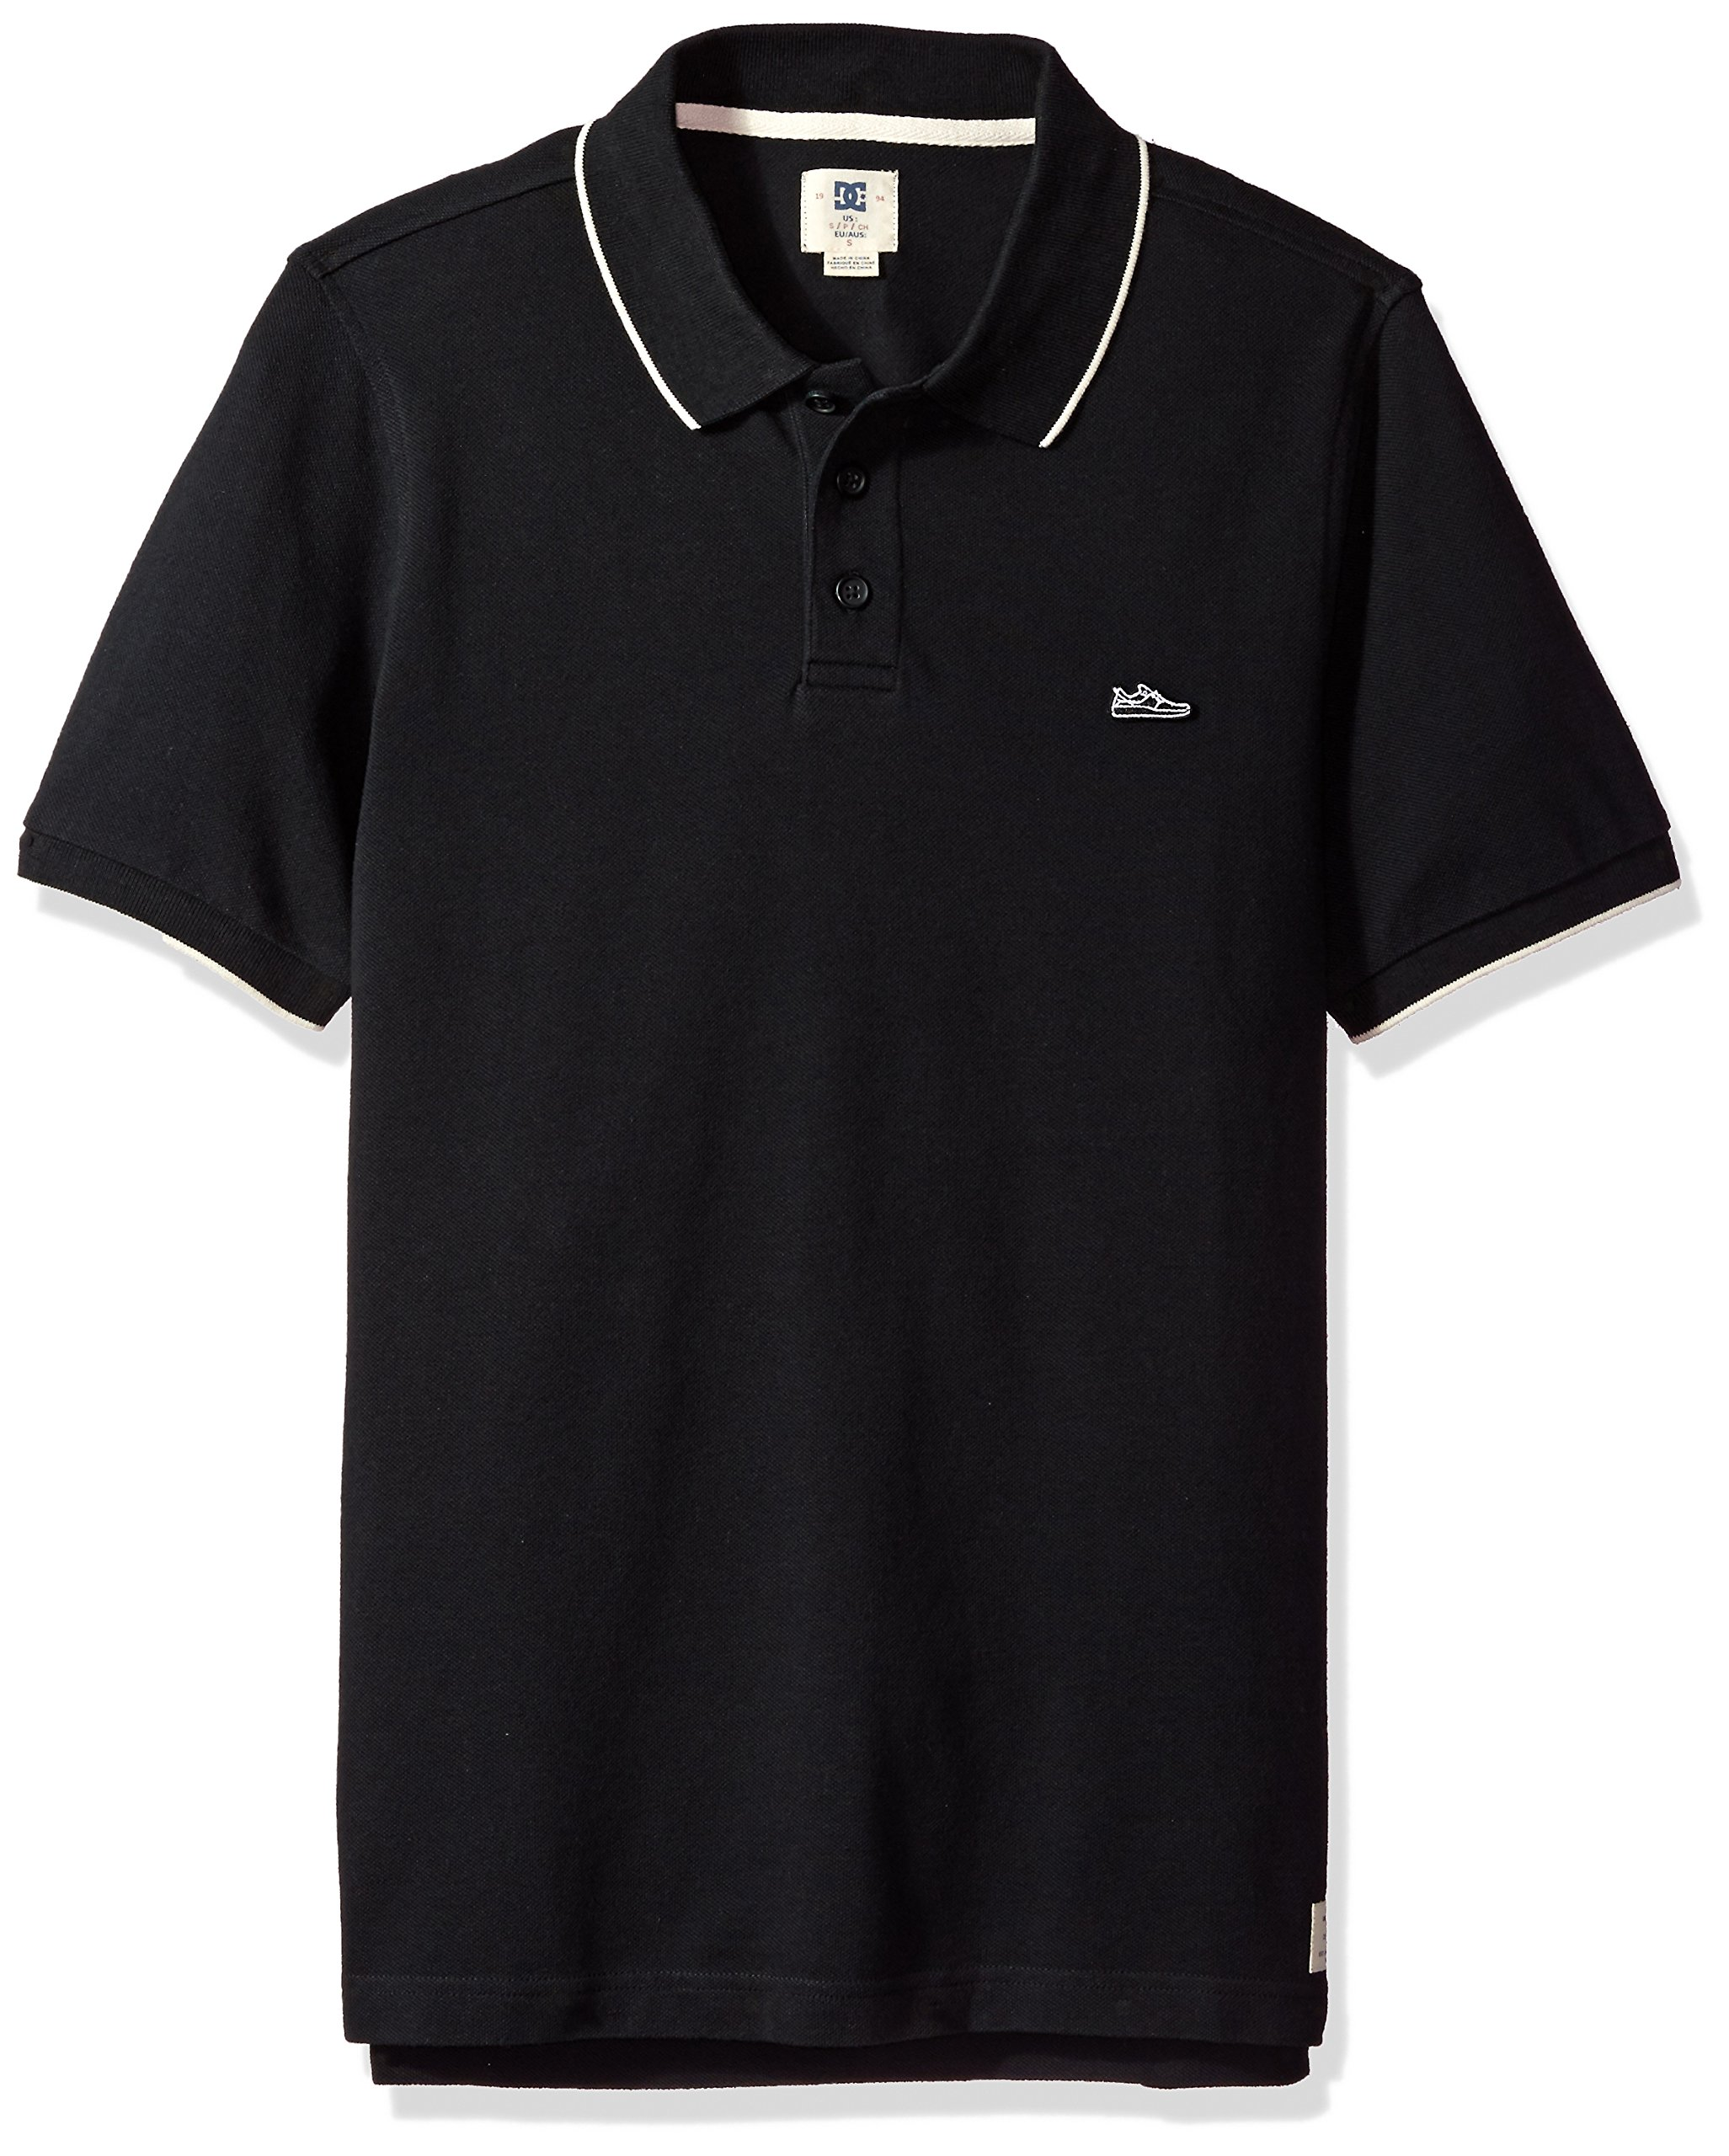 DC Men's Milnor Top, Black, Small by DC